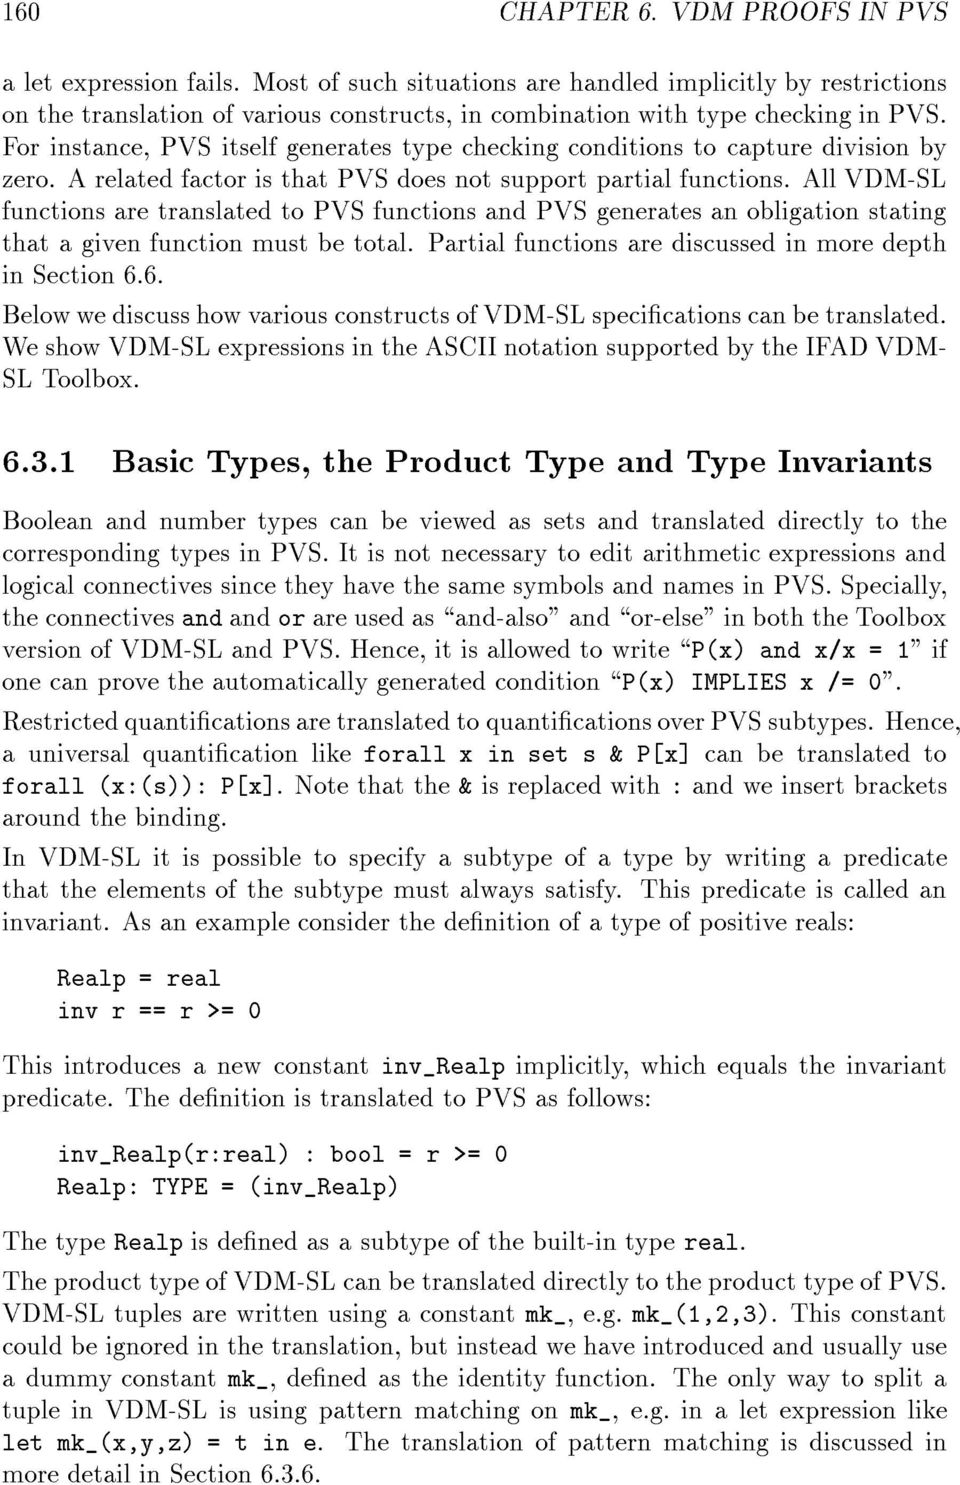 For instance, PVS itself generates type checking conditions to capture division by zero. A related factor is that PVS does not support partial functions.